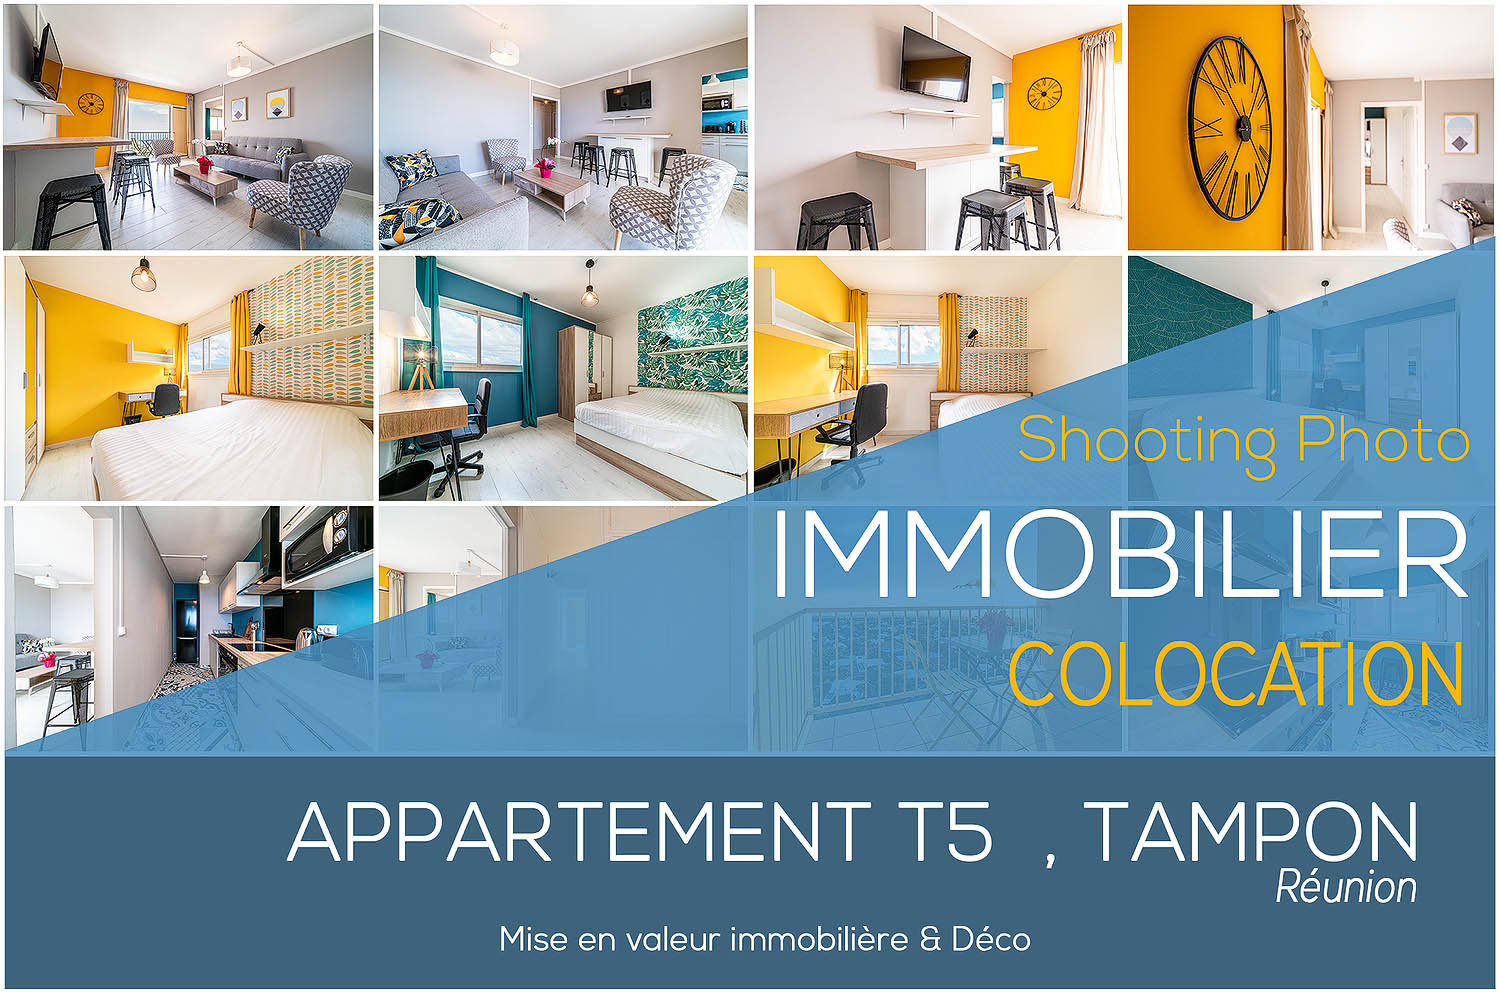 Shooting Photographe Immobilier Colocation T5 Tampon